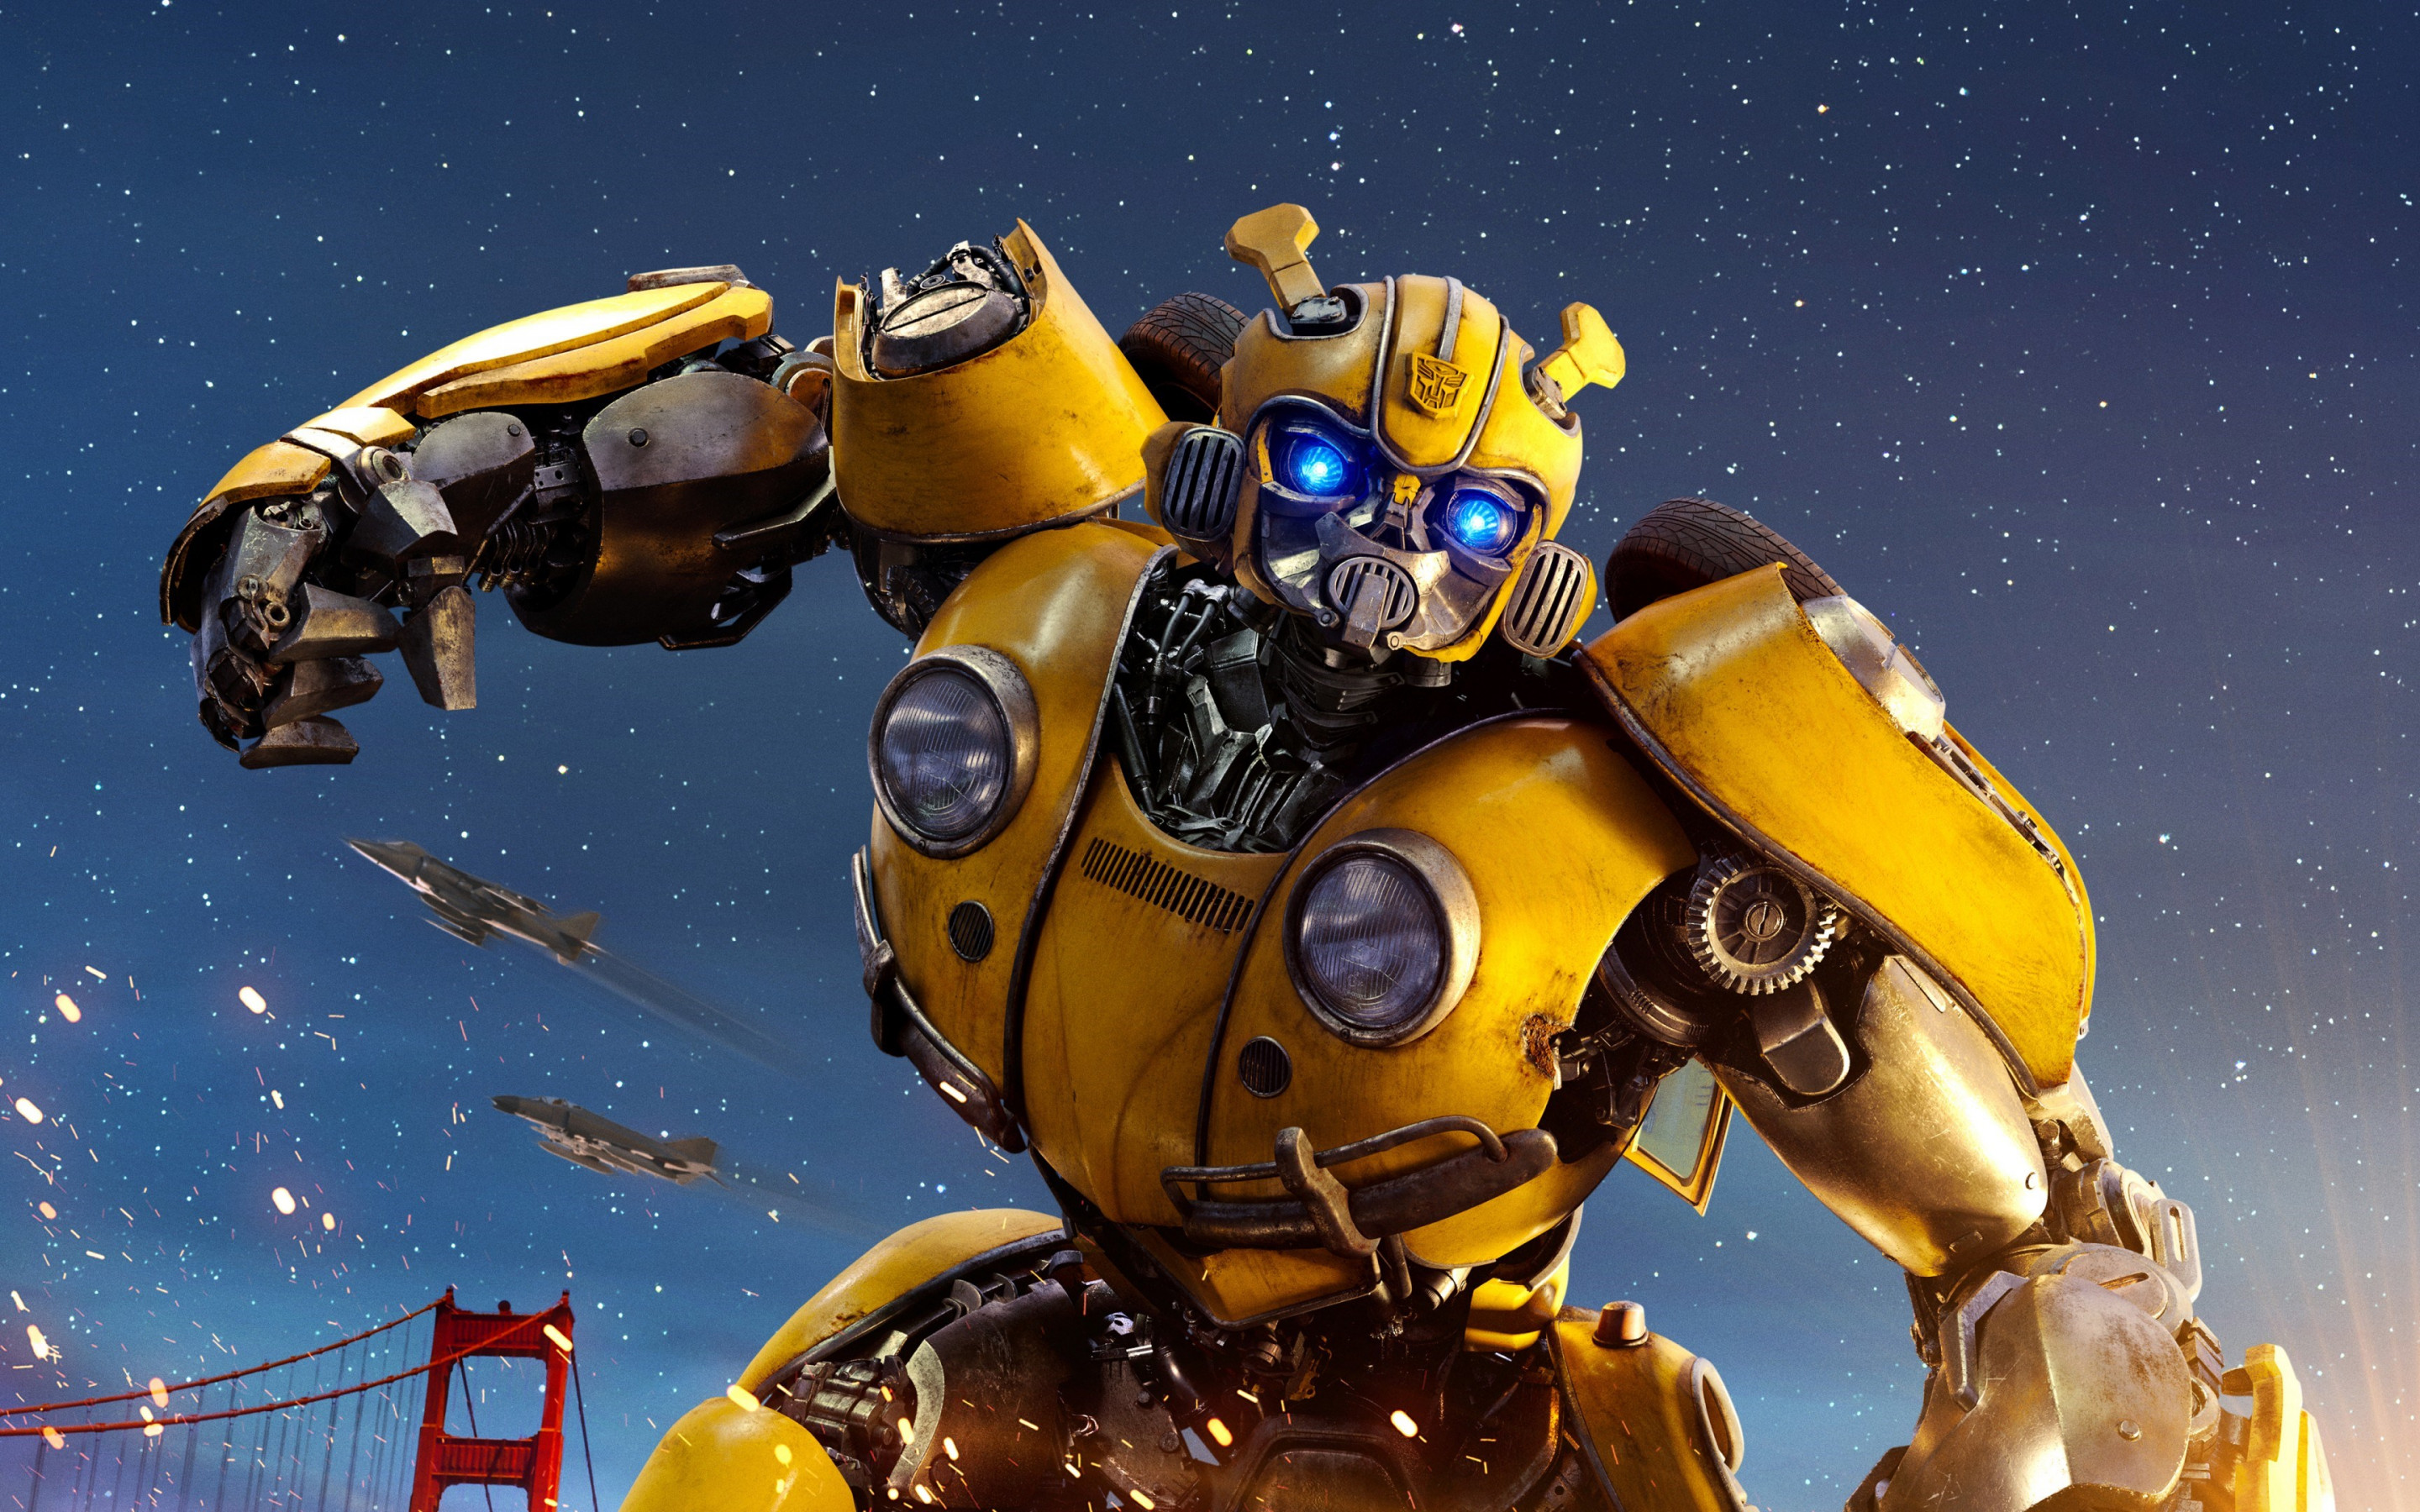 Bumblebee Transformers wallpaper 2880x1800